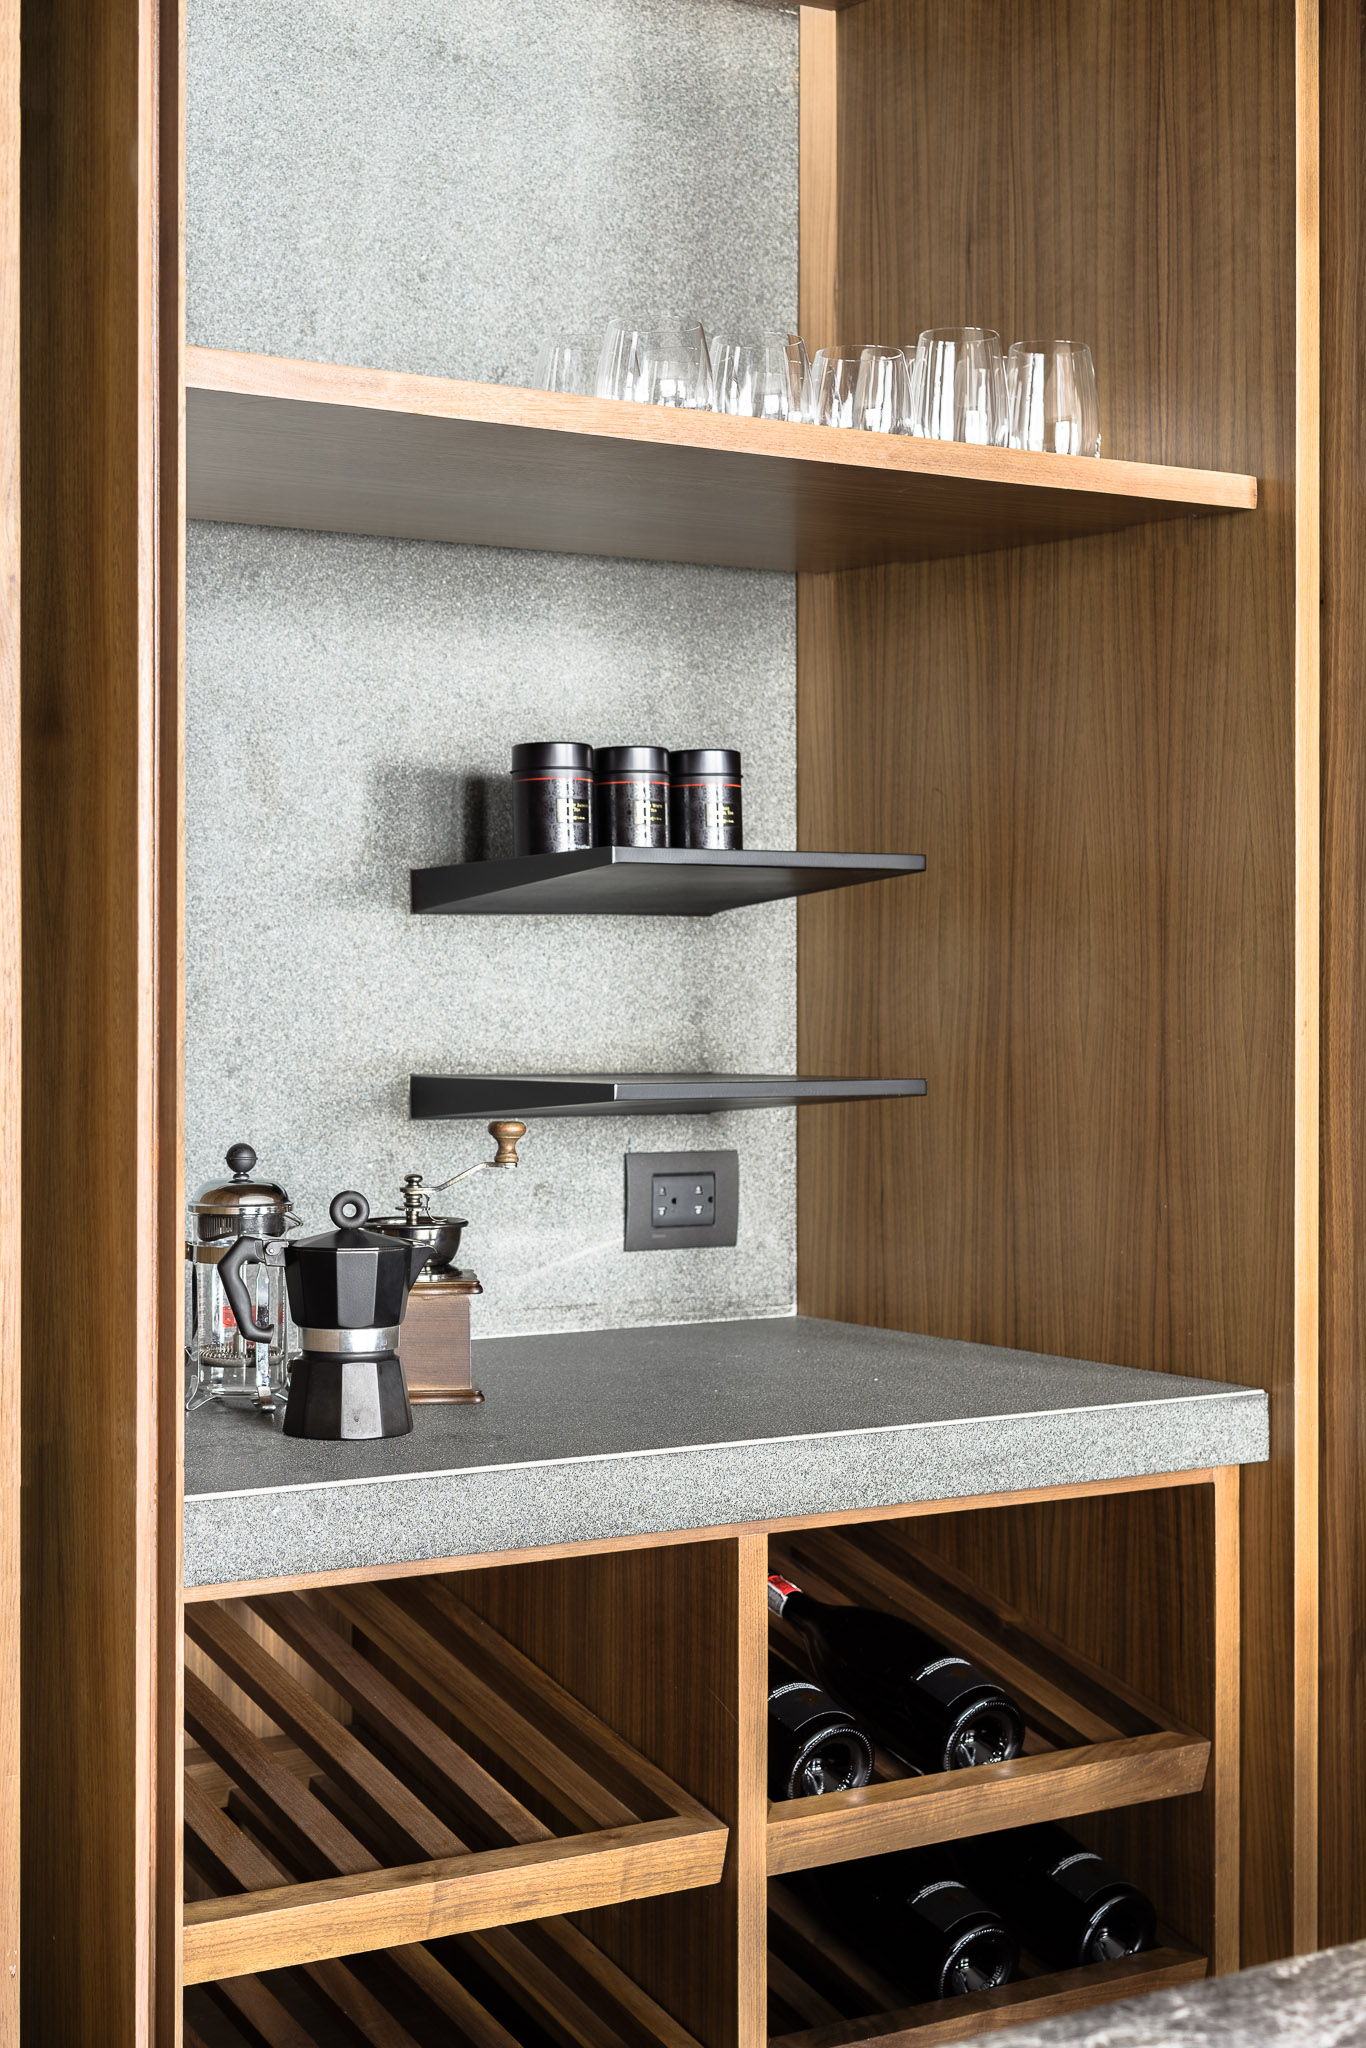 Thonglor residence_kitchen storage